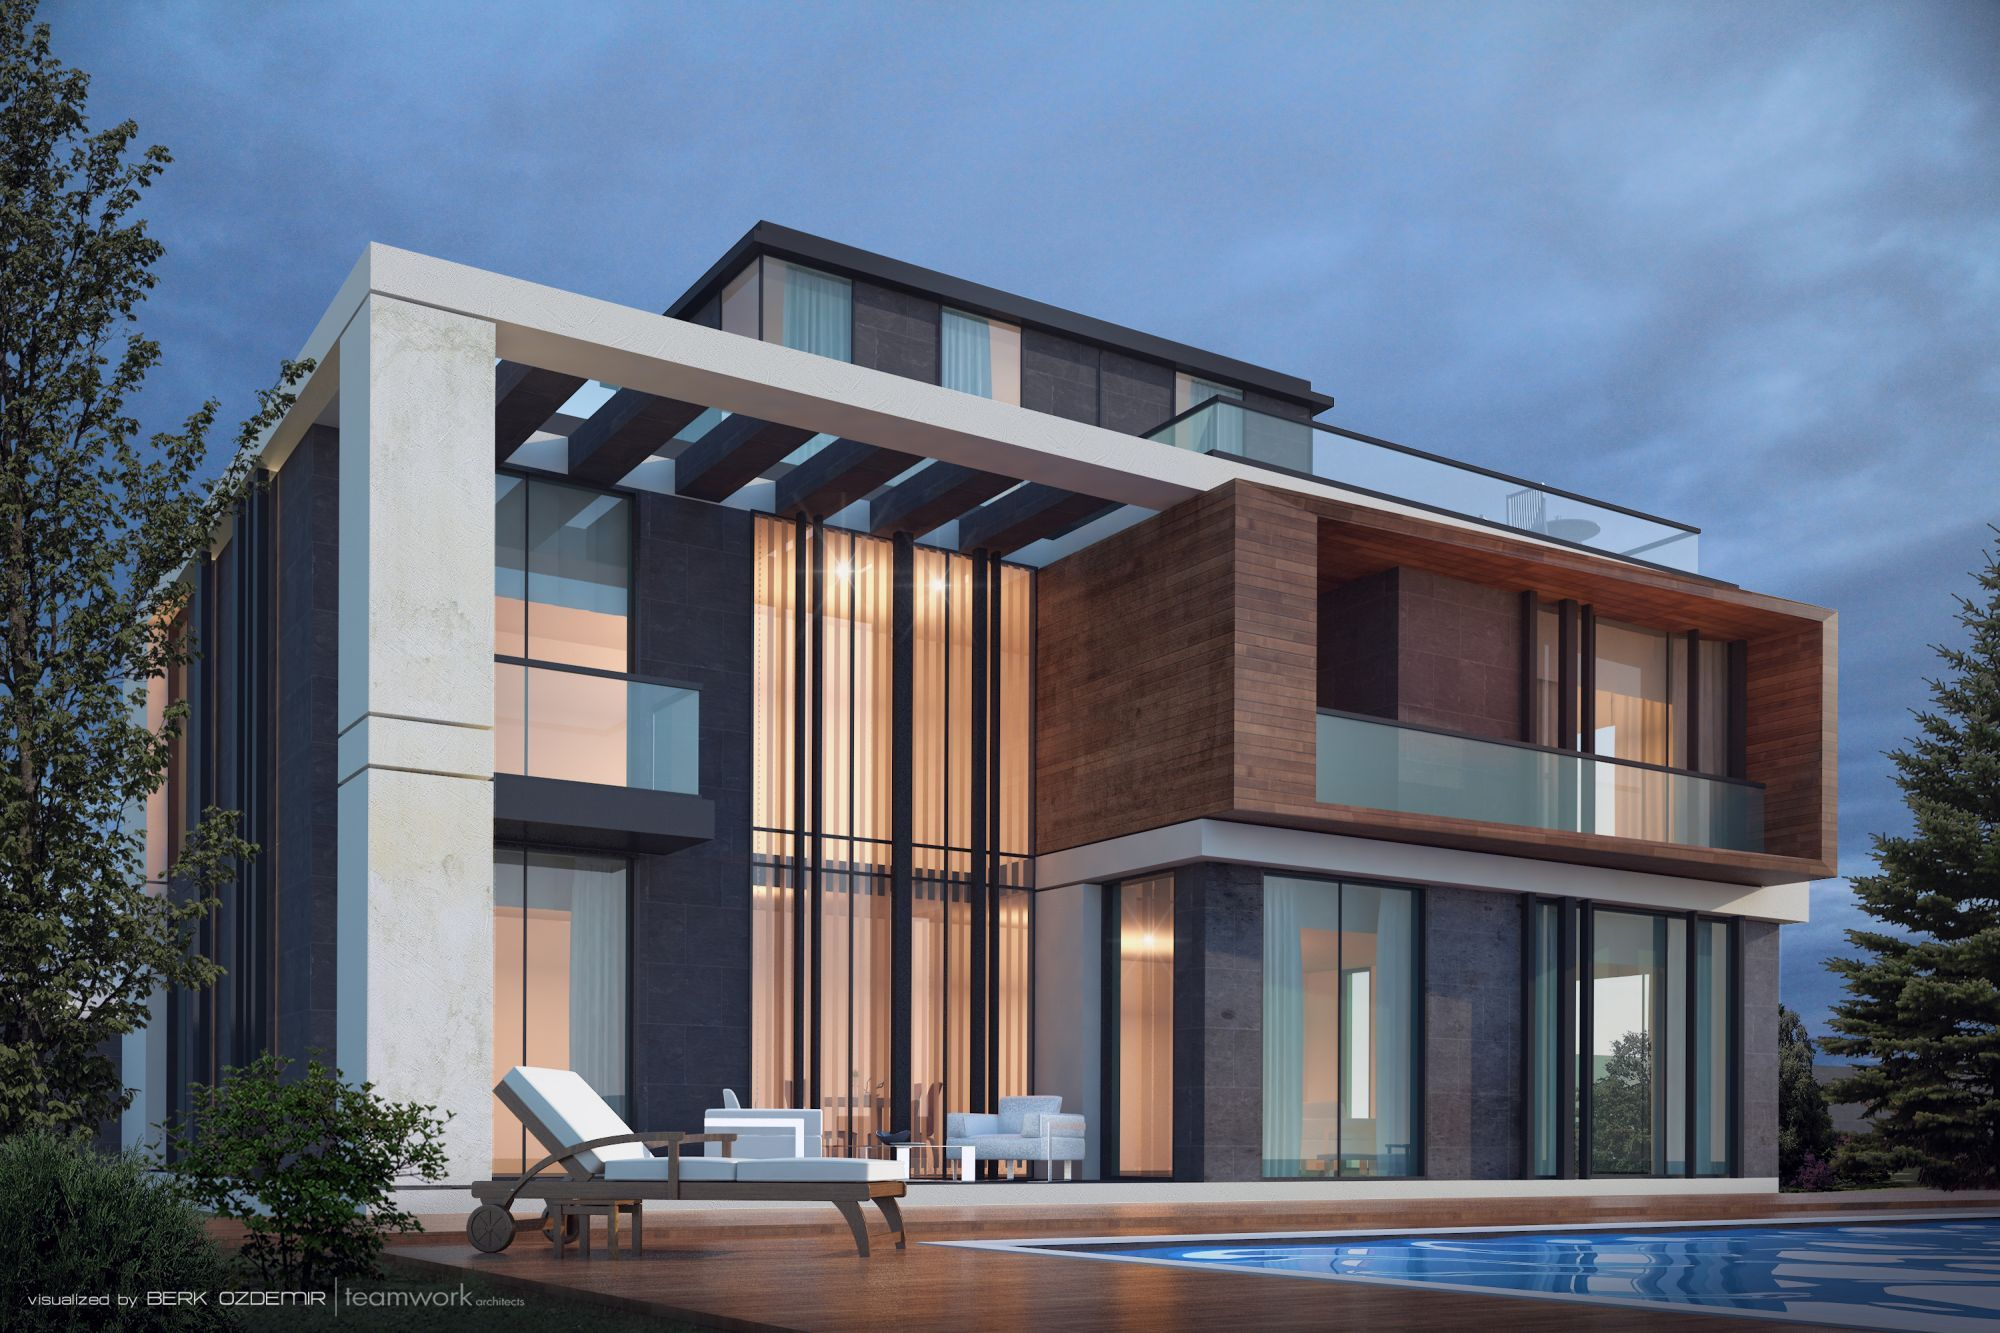 Modern villa design ecuador house ideas rear view for Contemporary architecture